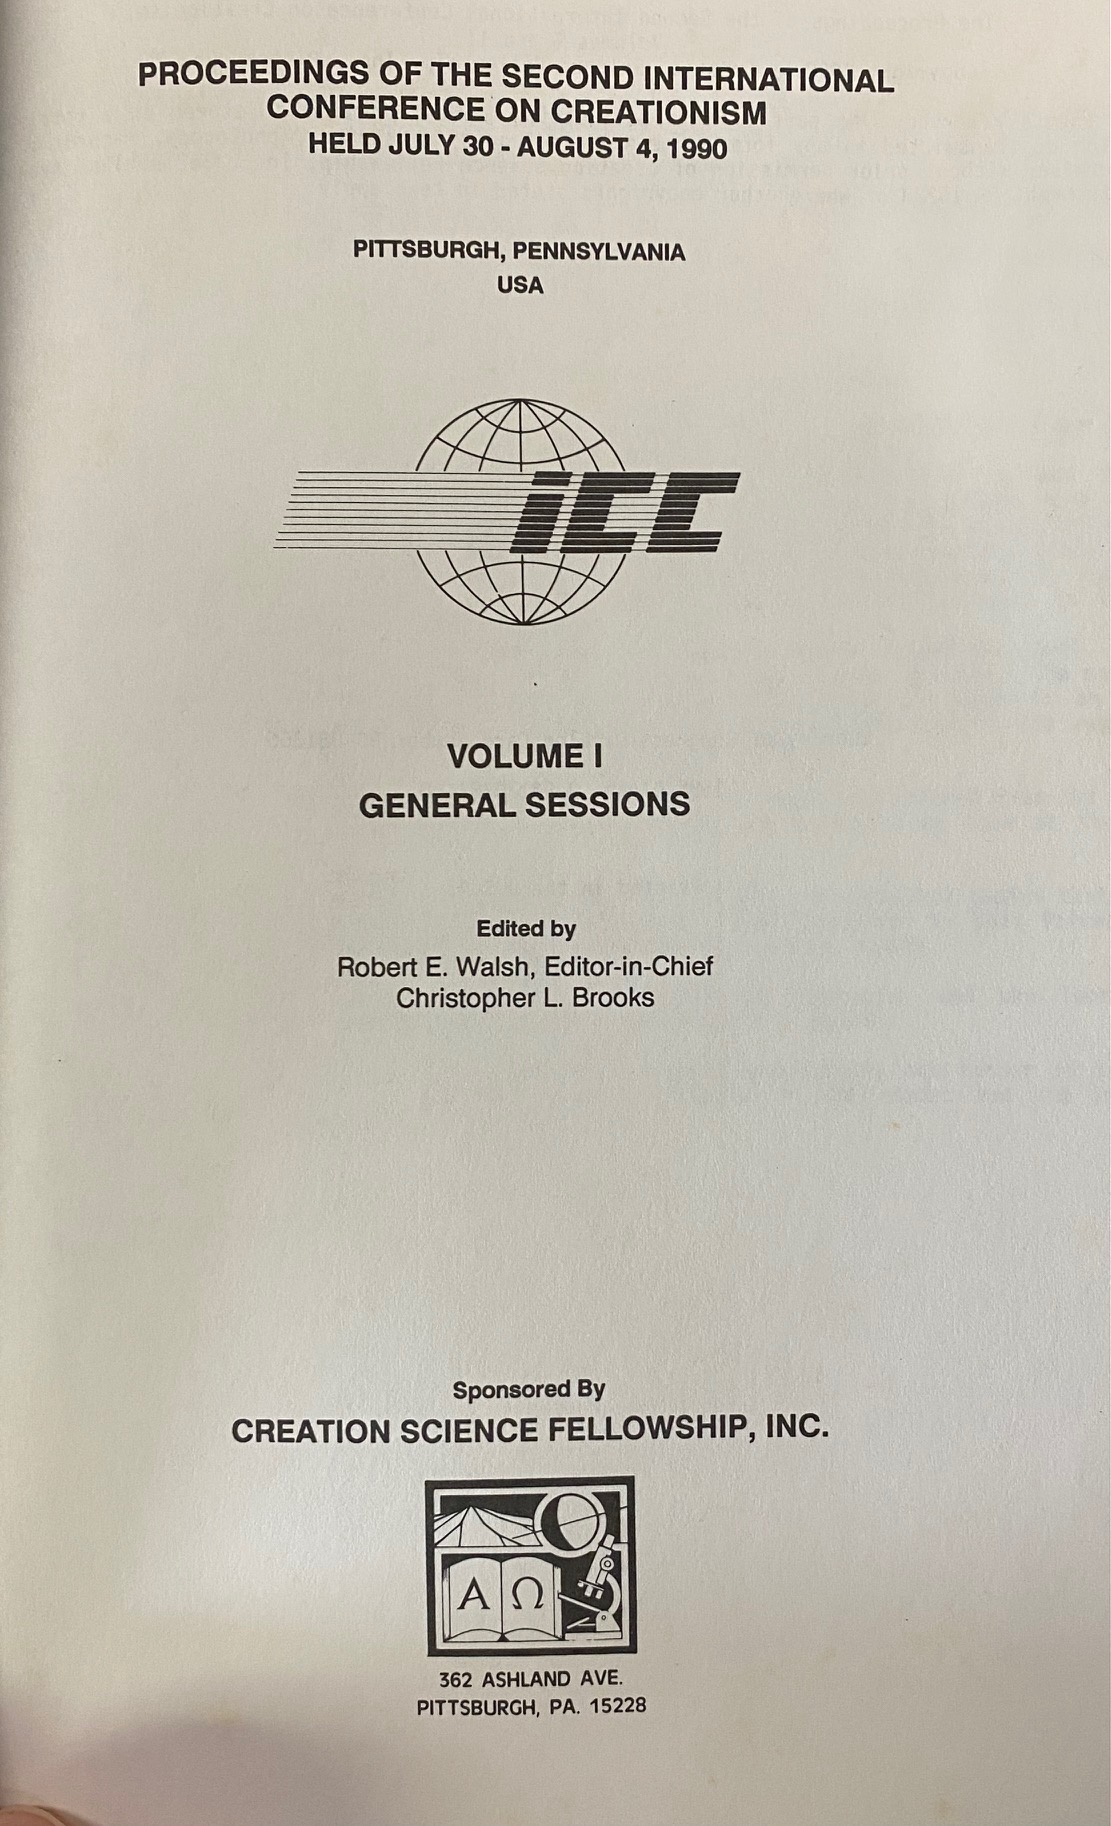 Image for Proceedings of the Second International Conference on Creationism, held July 30 to August 4, 1990, Pittsburgh, Pennsylvania, USA  - Volume I (General Sessions)